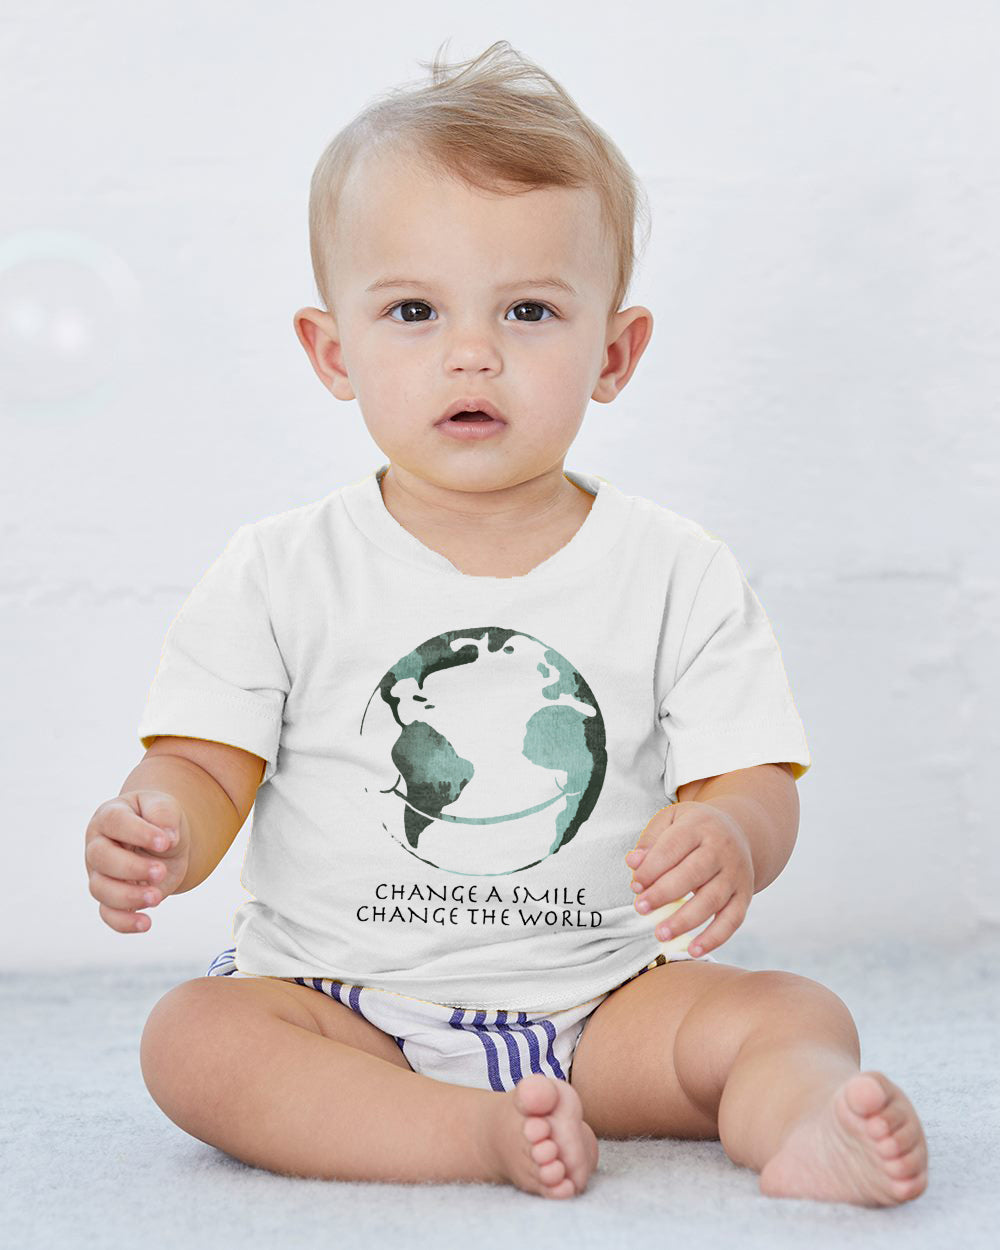 Change A Smile Change The World Baby Cozy Graphic Tee Onesie in White